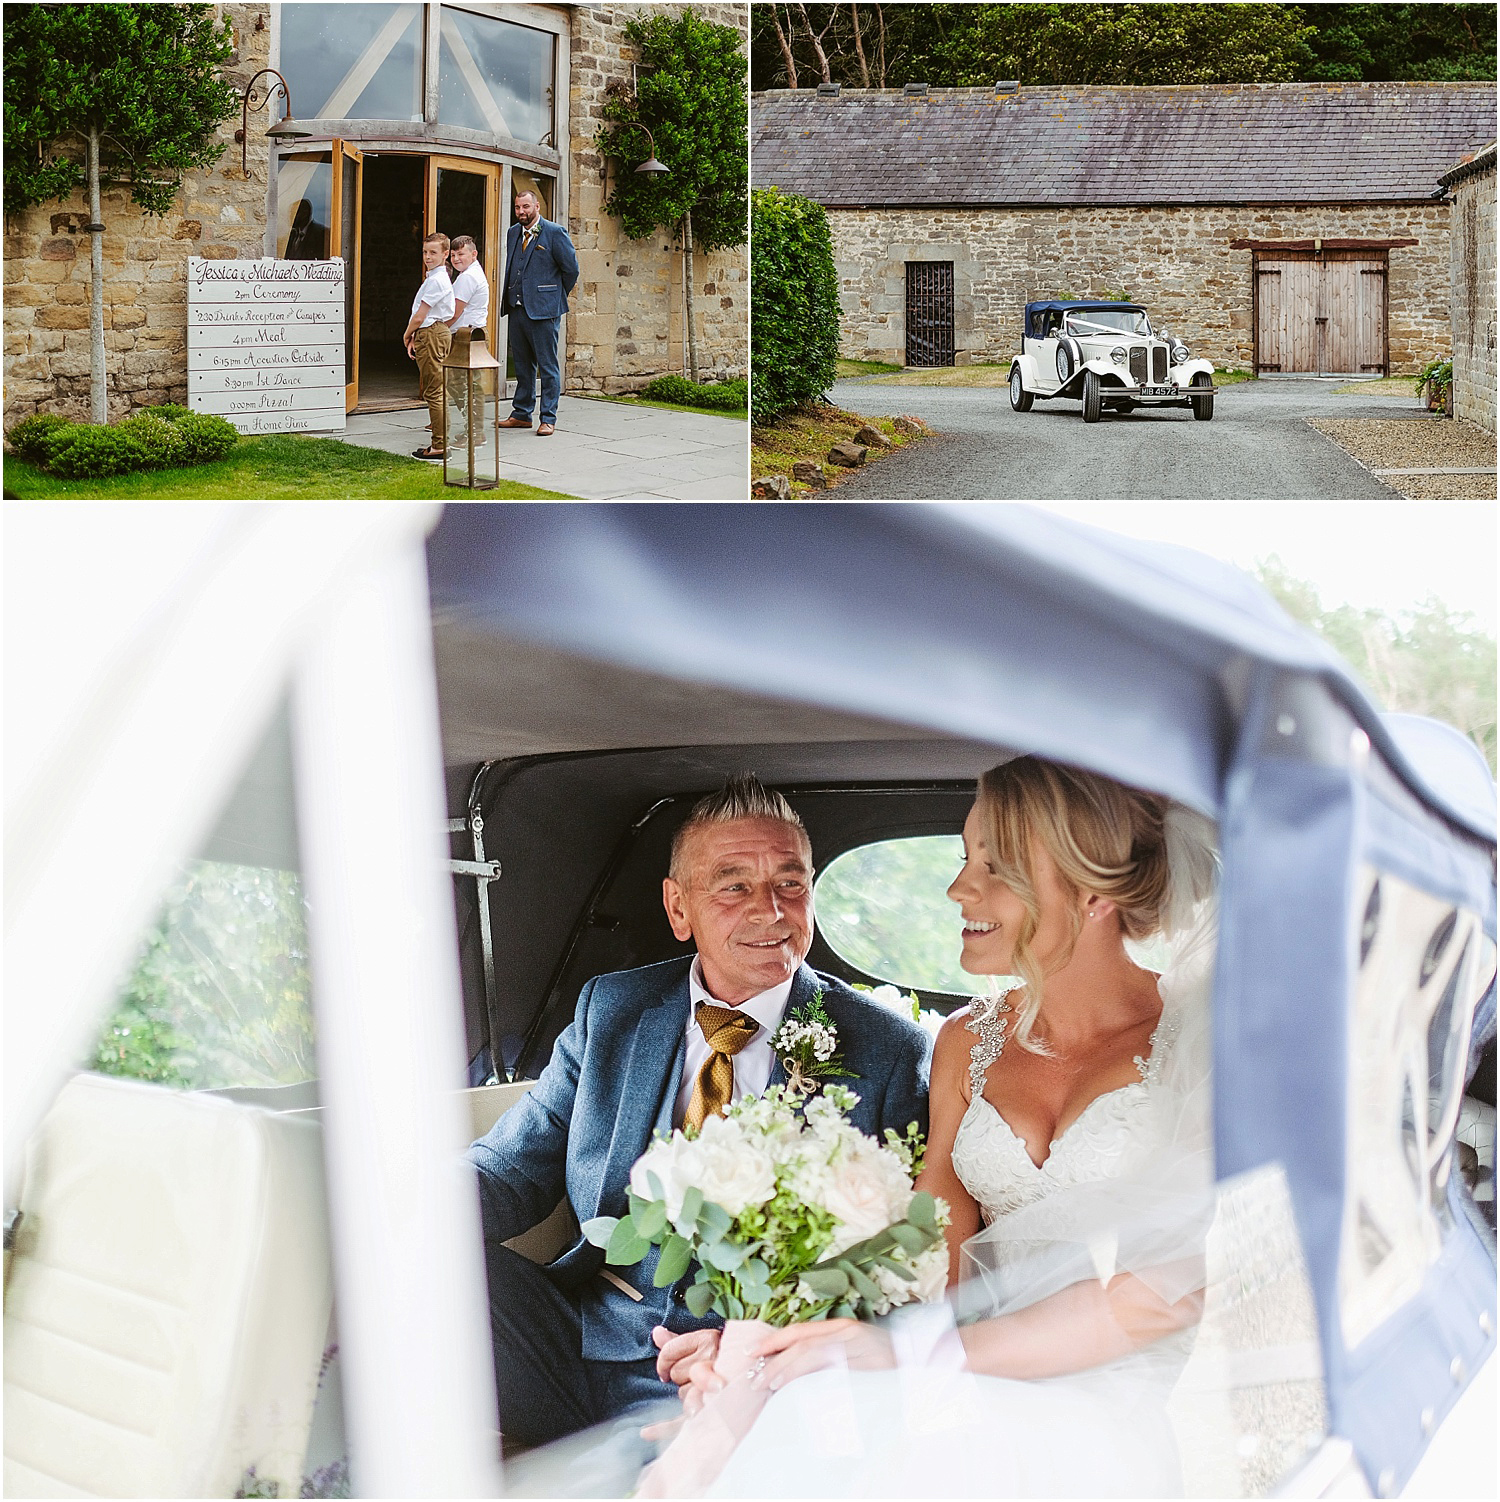 Wedding at Healey Barn - wedding photography by www.2tonephotography.co.uk 032.jpg